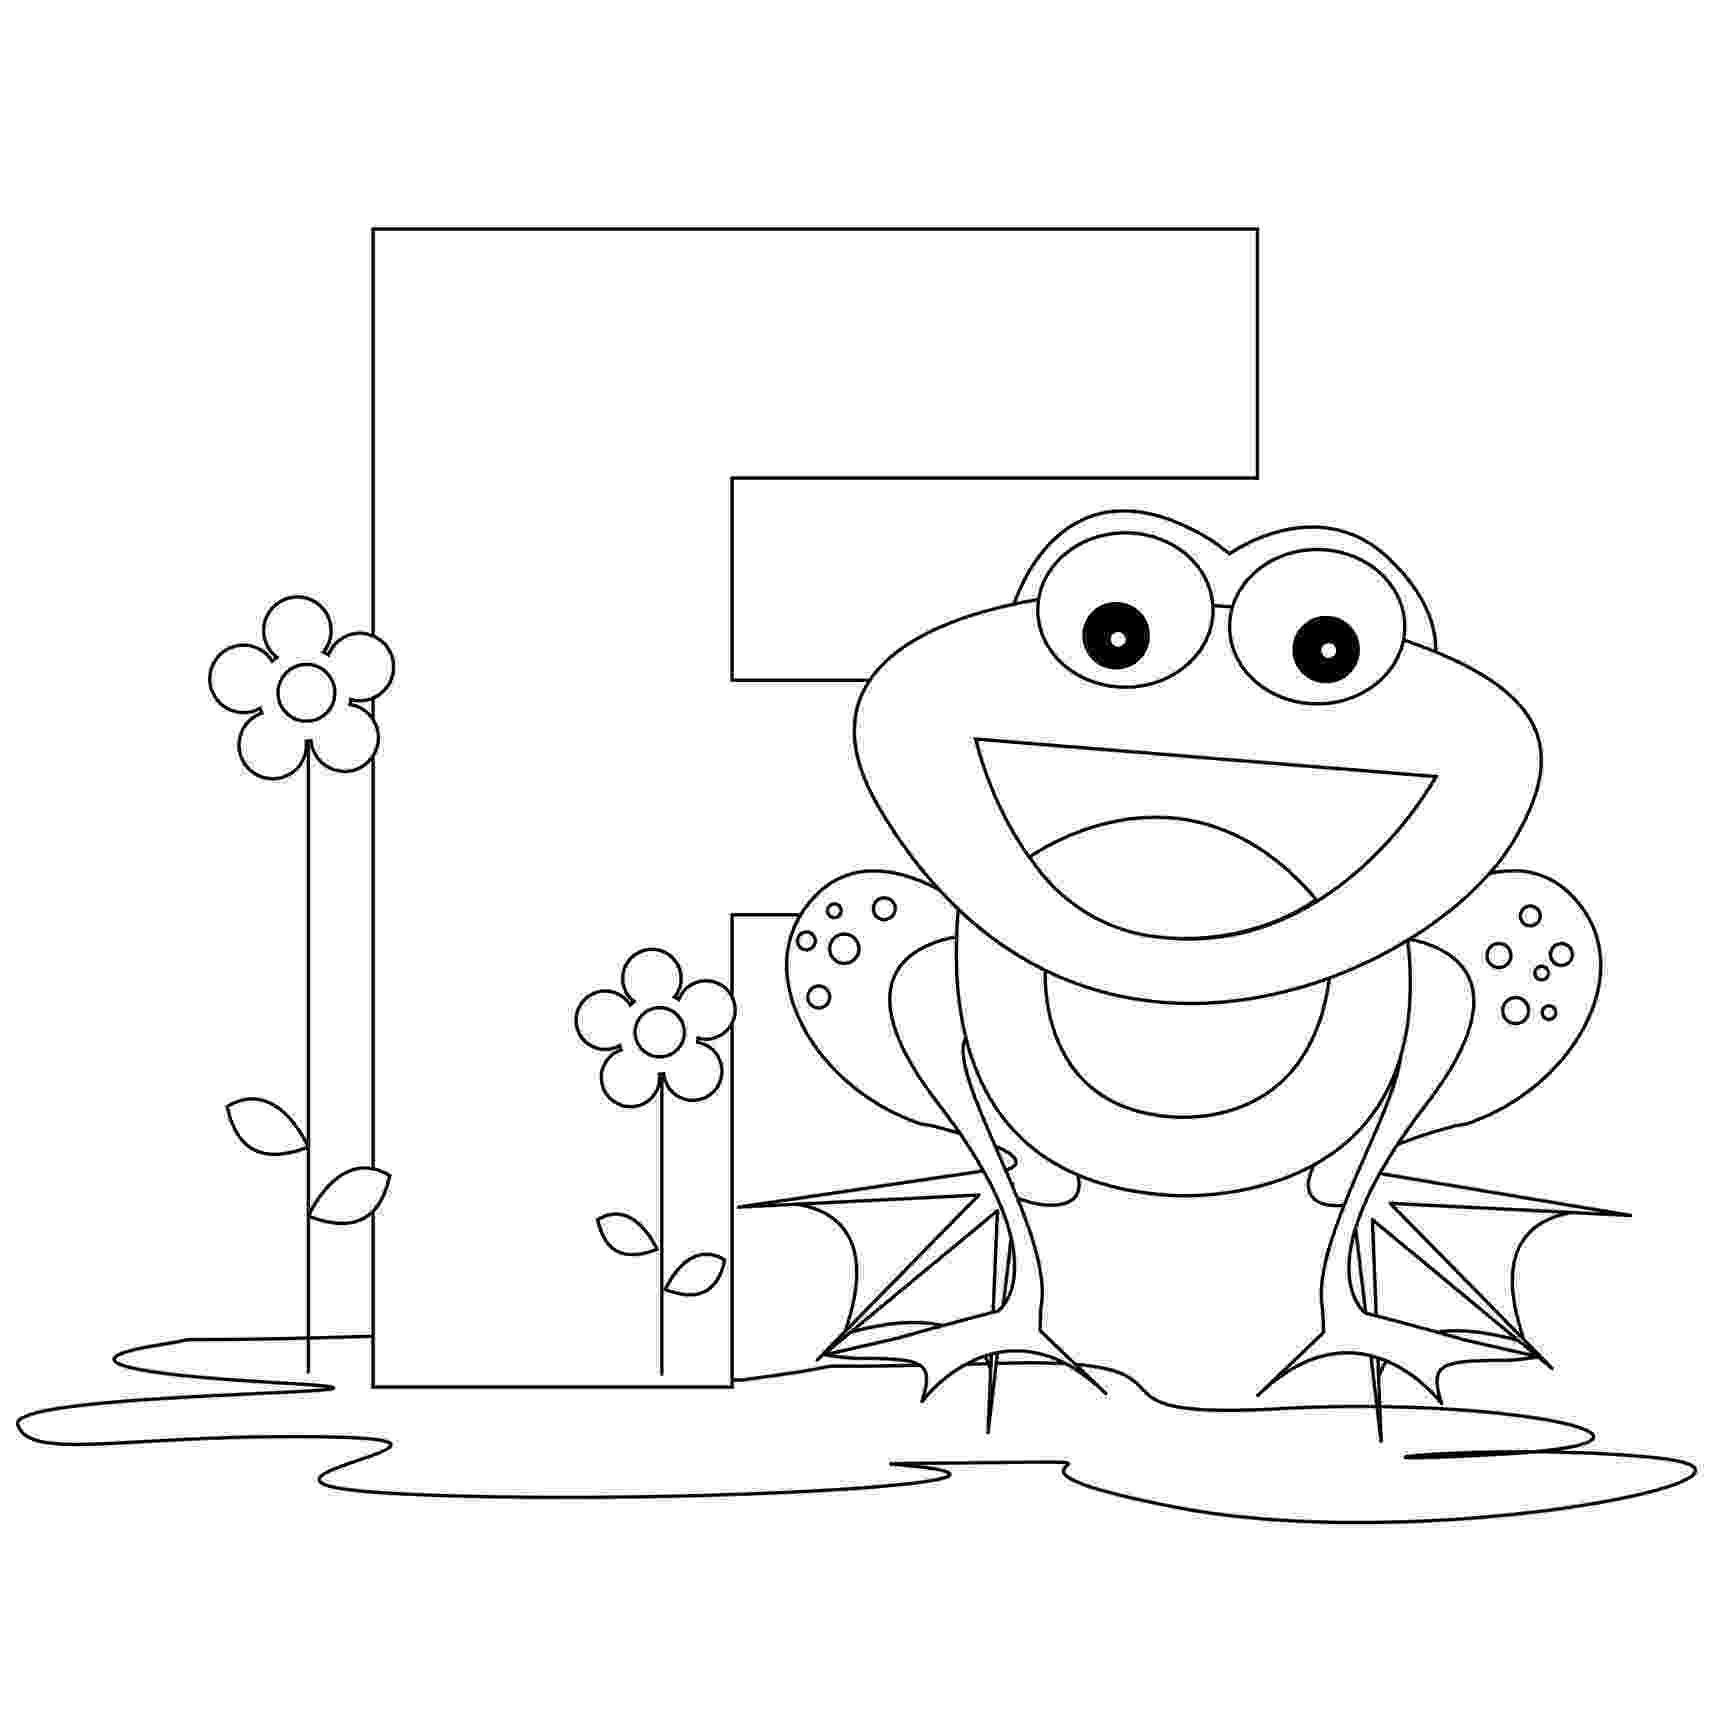 printable coloring alphabet letters free printable alphabet coloring pages for kids best printable coloring alphabet letters